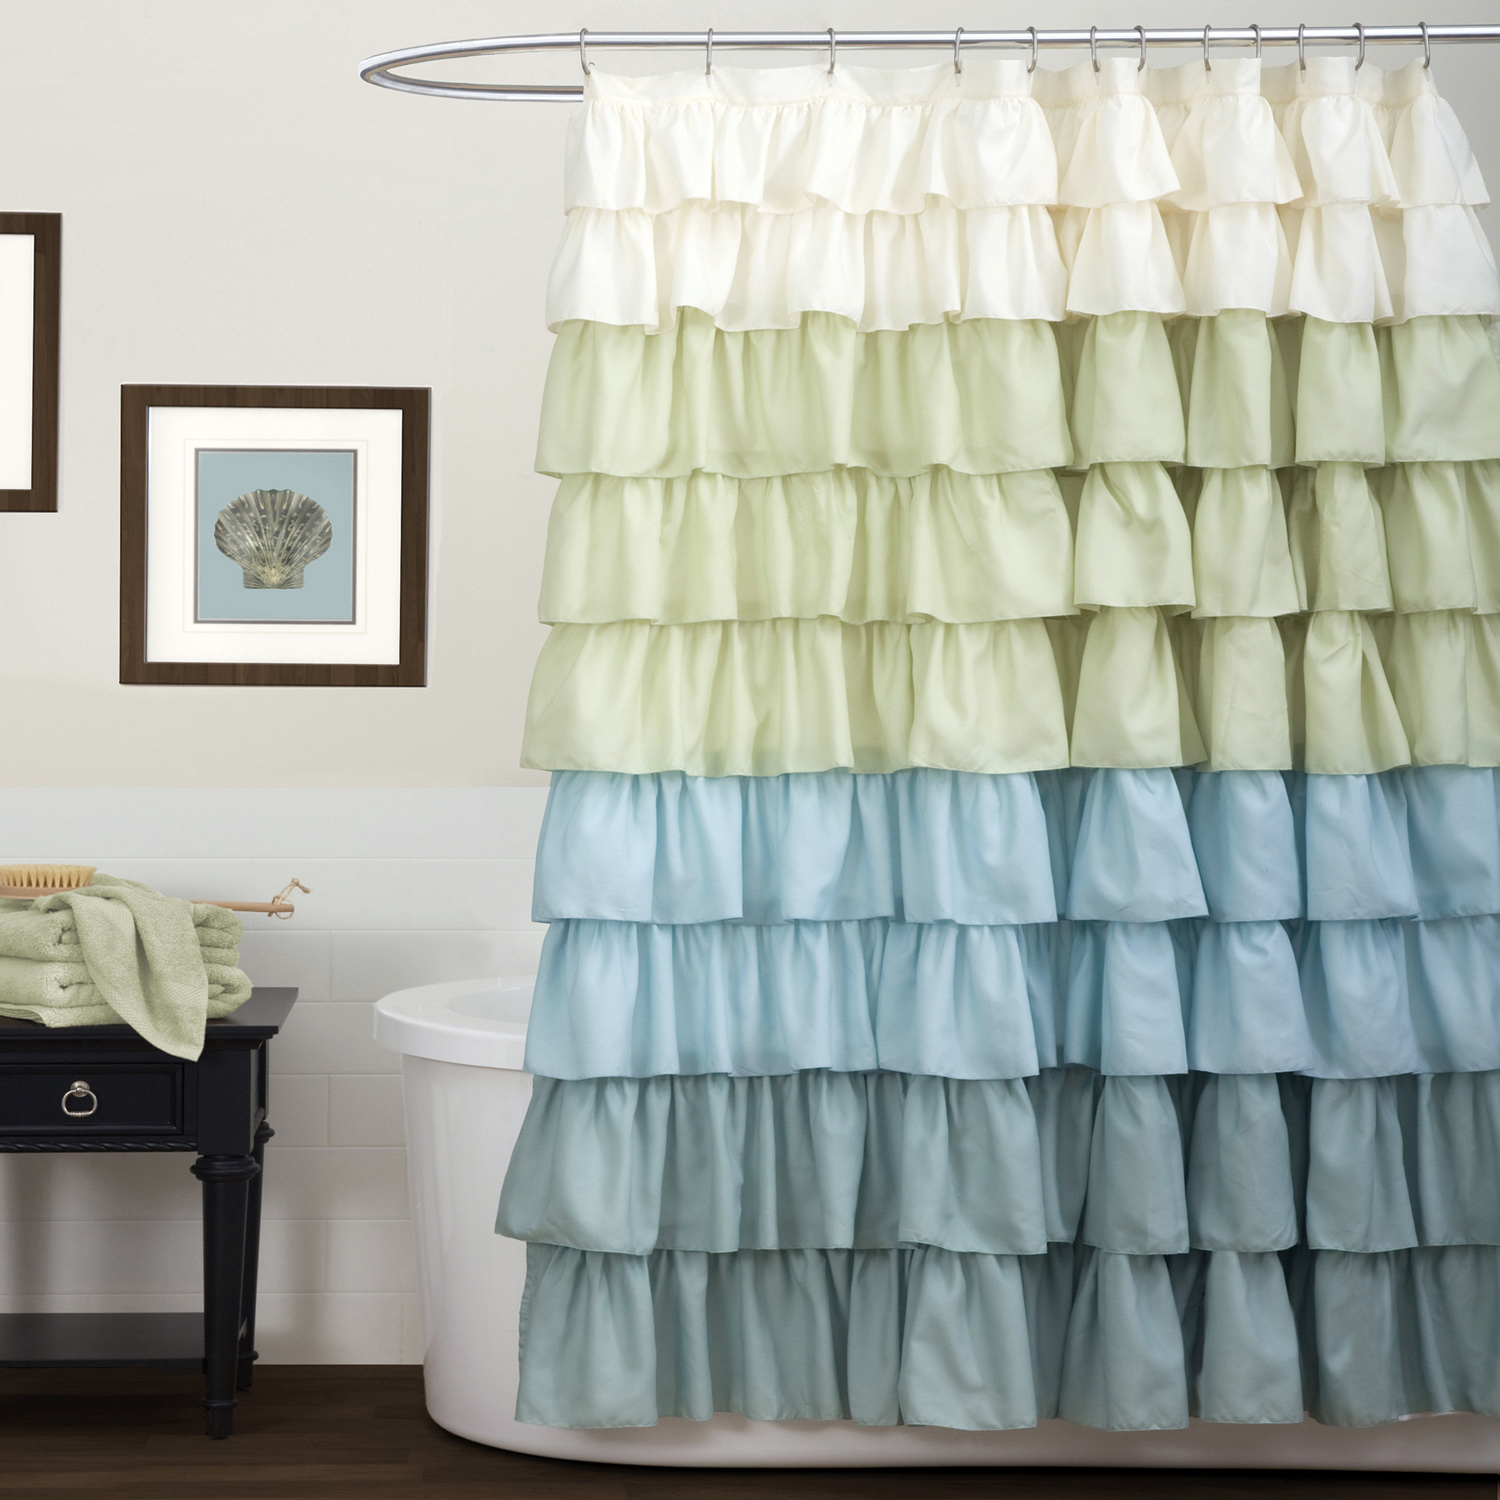 colorful-ruffled-cloth-shower-curtain